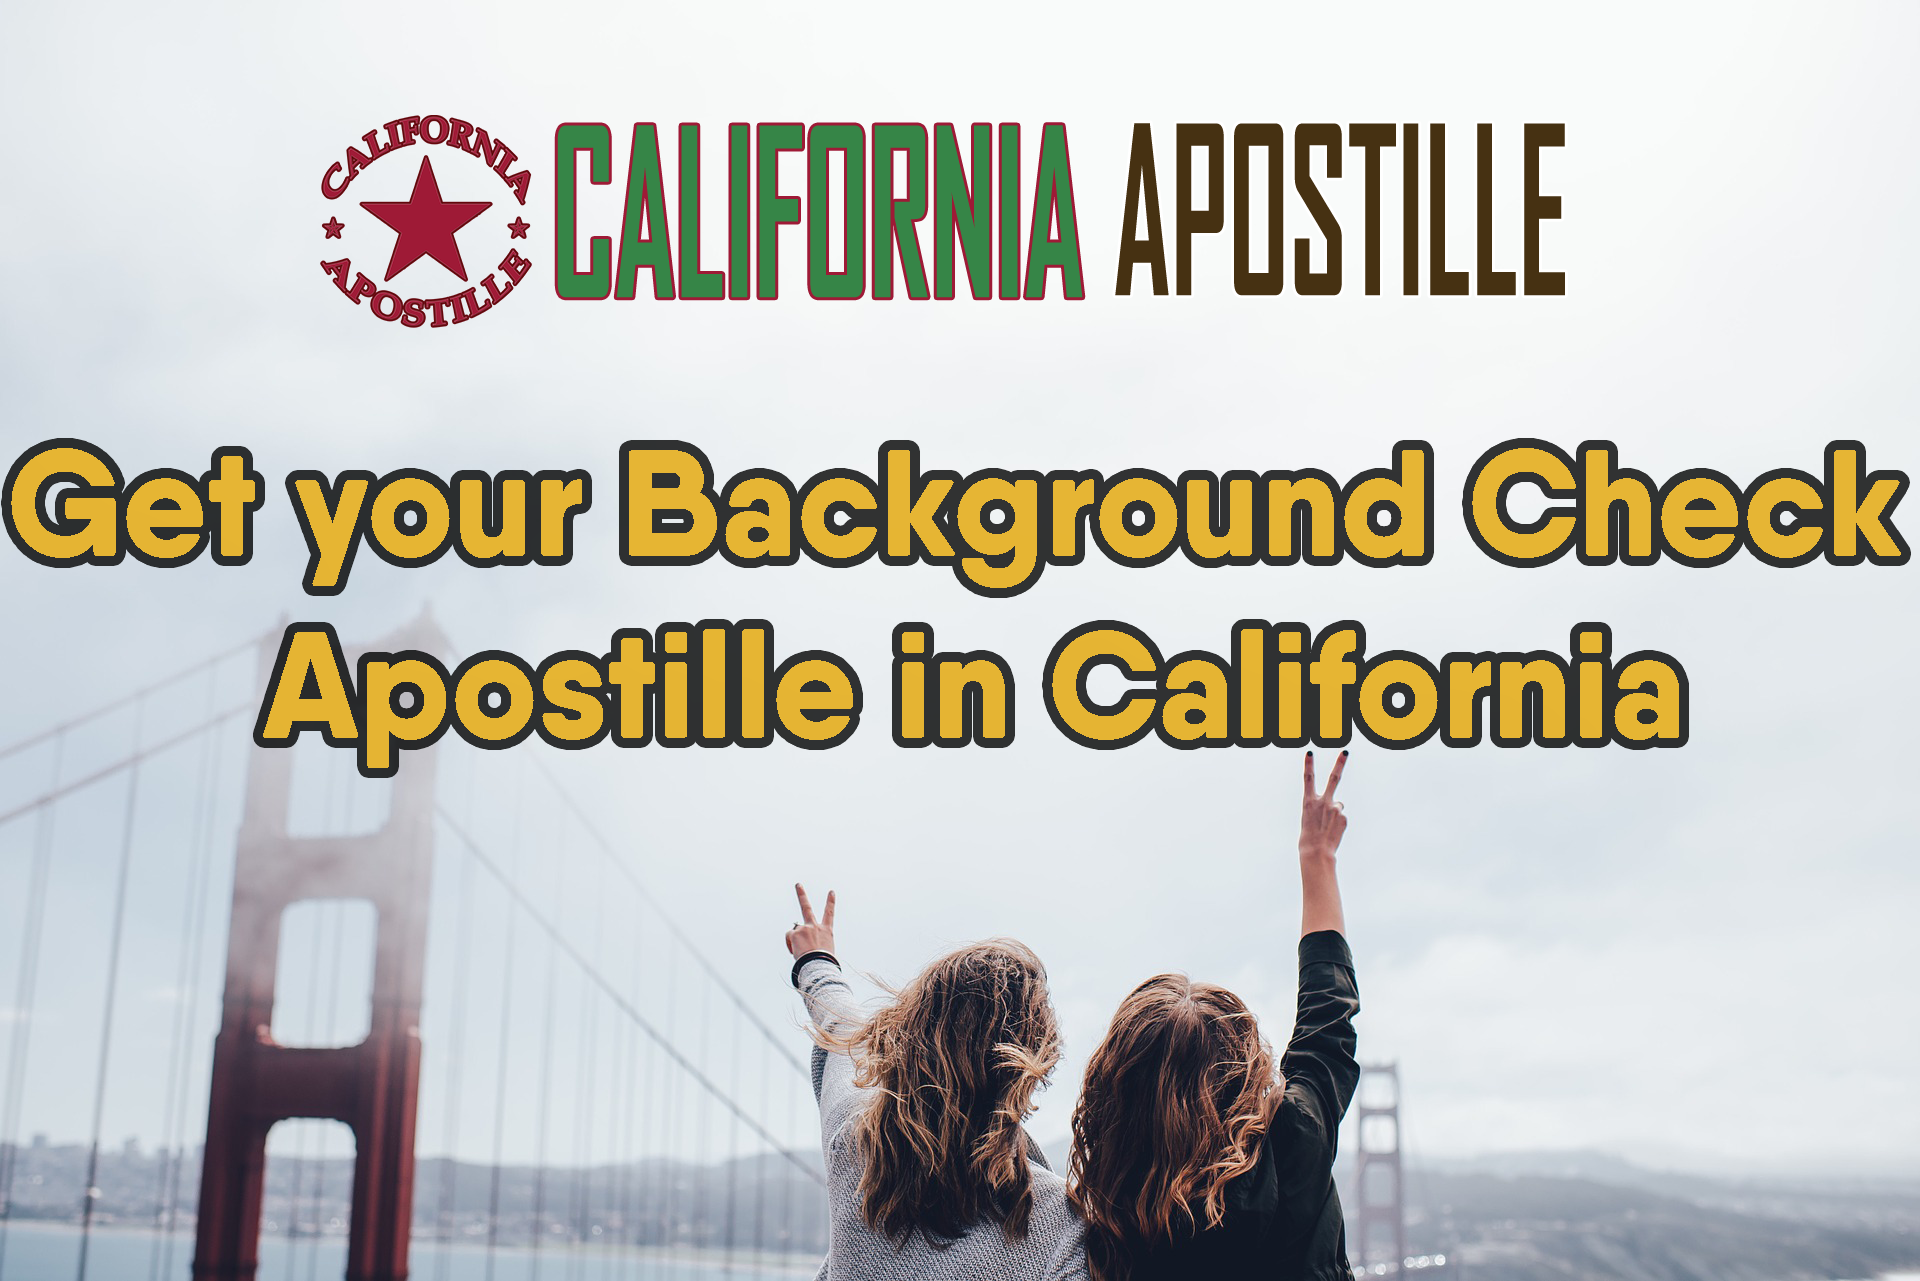 The Fastest Way To Get your Background Check Apostilled in